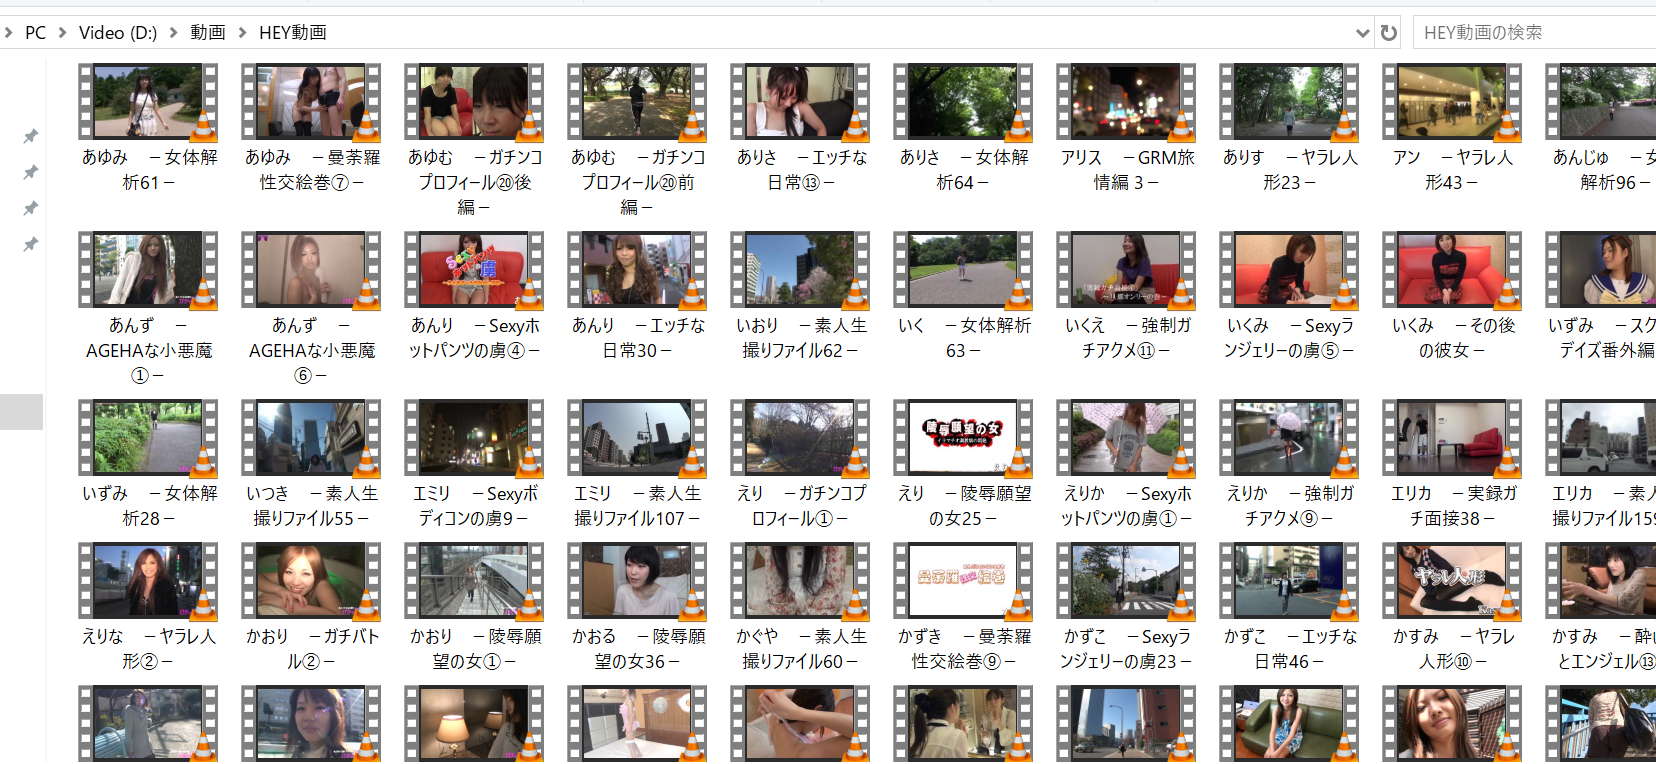 some of the uncensored JAV erotic videos I purchased separately from the HEYdouga